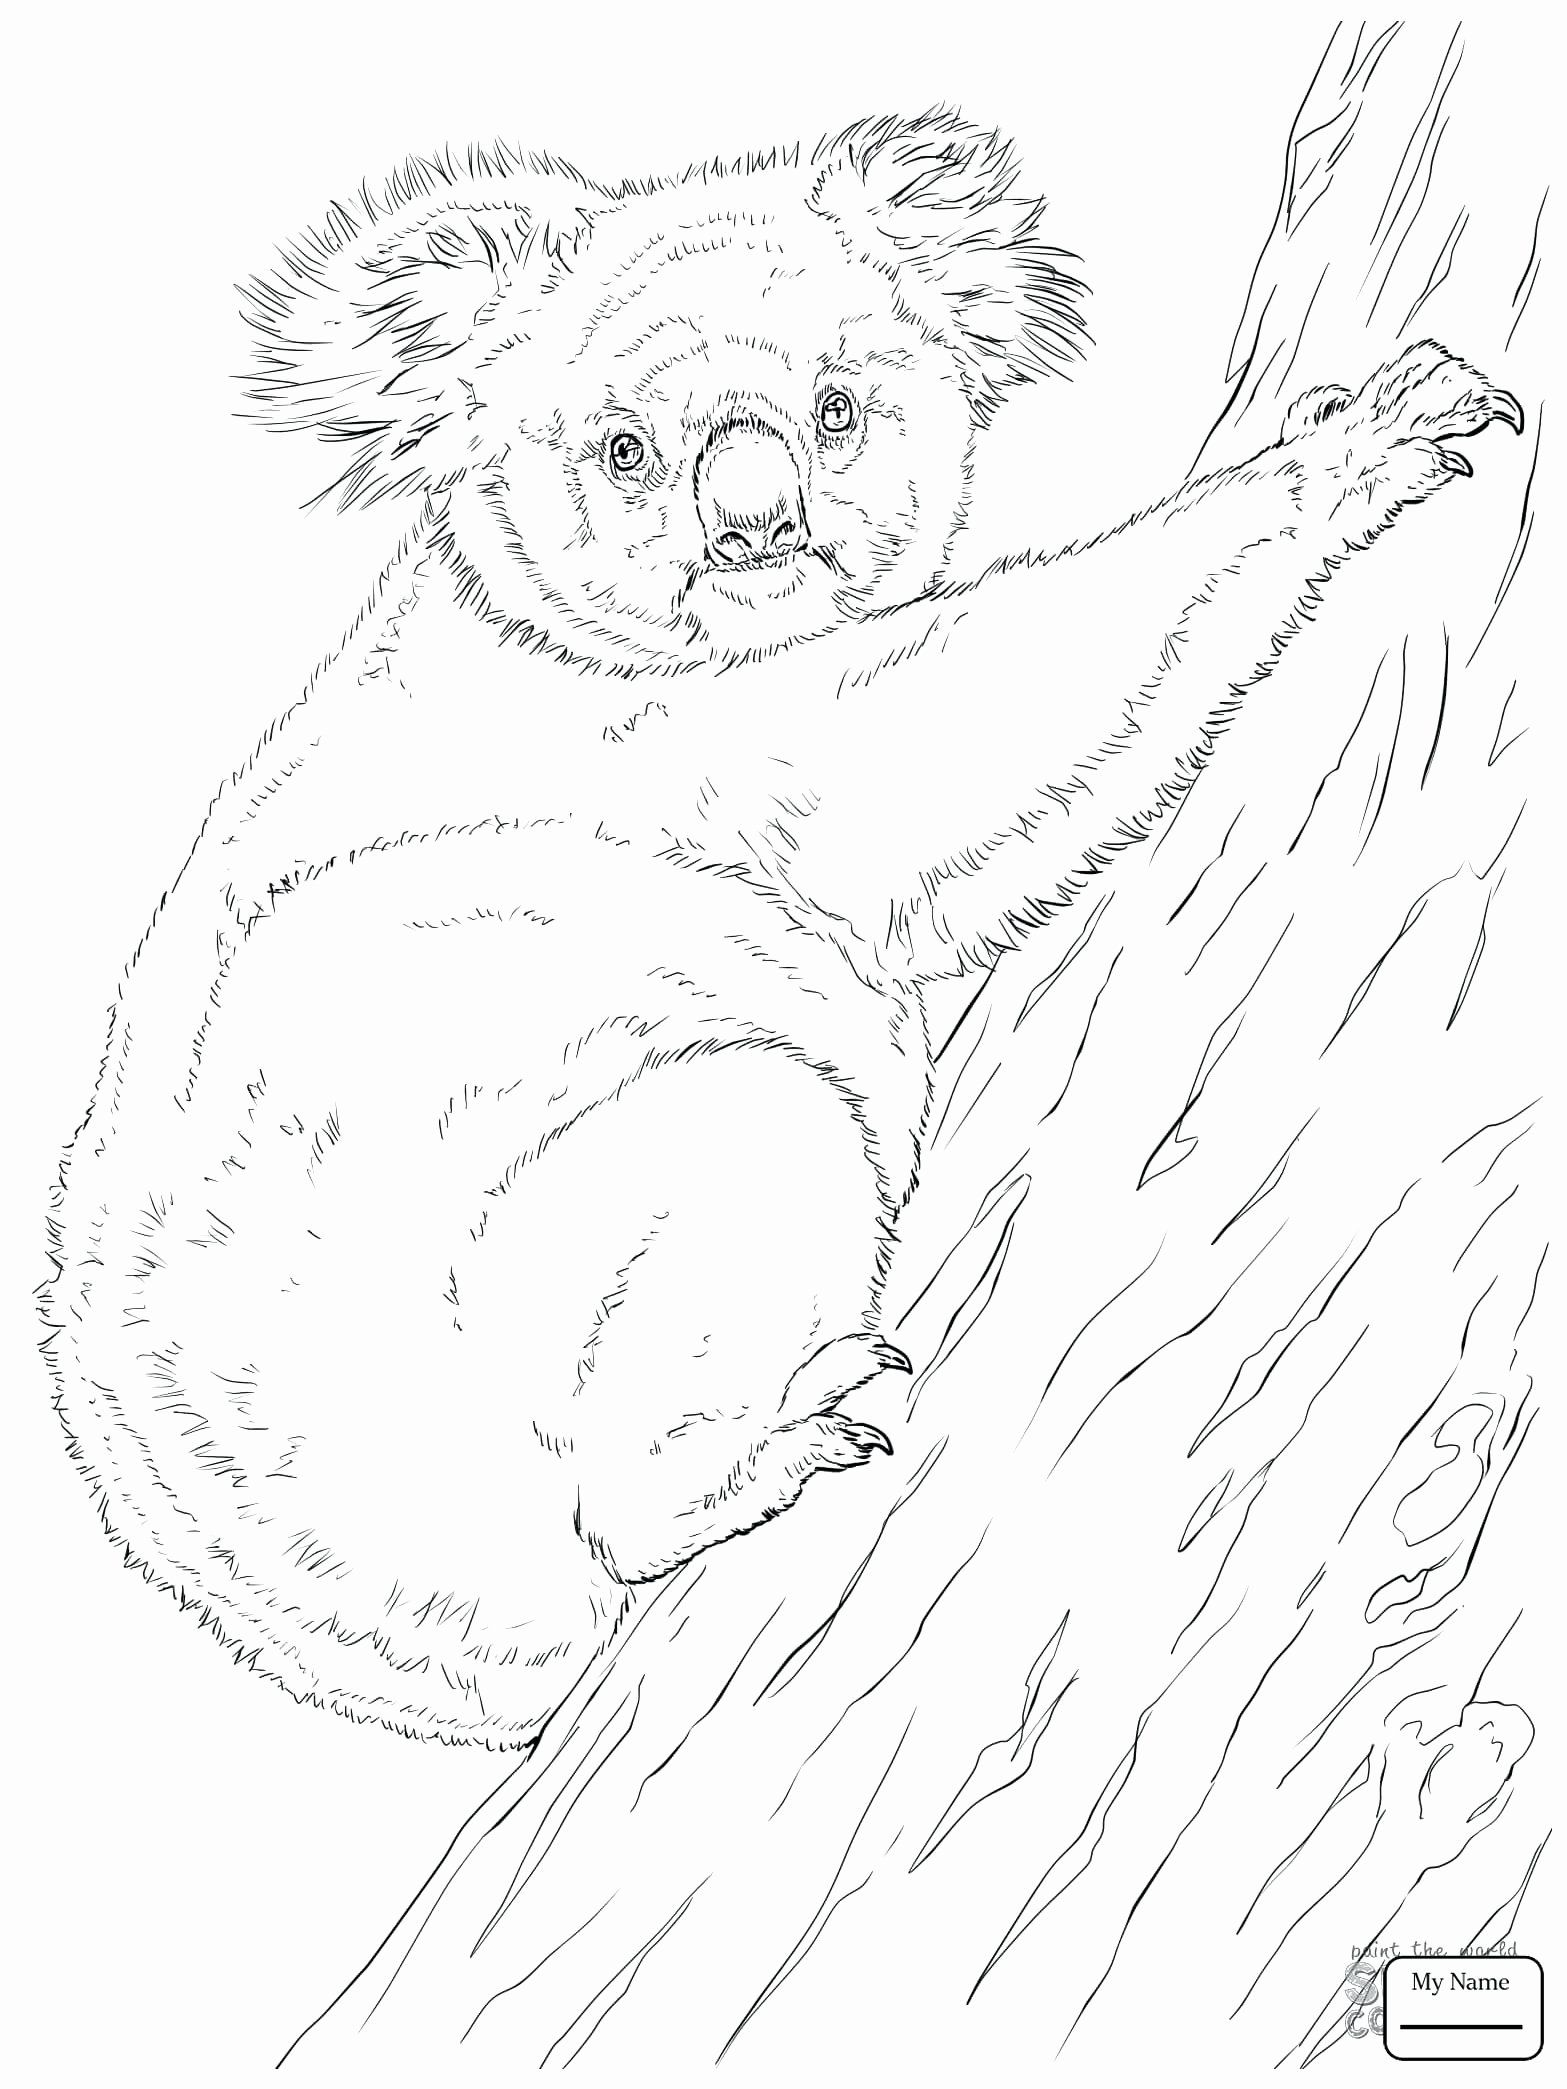 Golden Retriever Coloring Page Beautiful Golden Retriever Line Drawing At Getdrawings Animal Coloring Pages Tree Coloring Page Coloring Pages